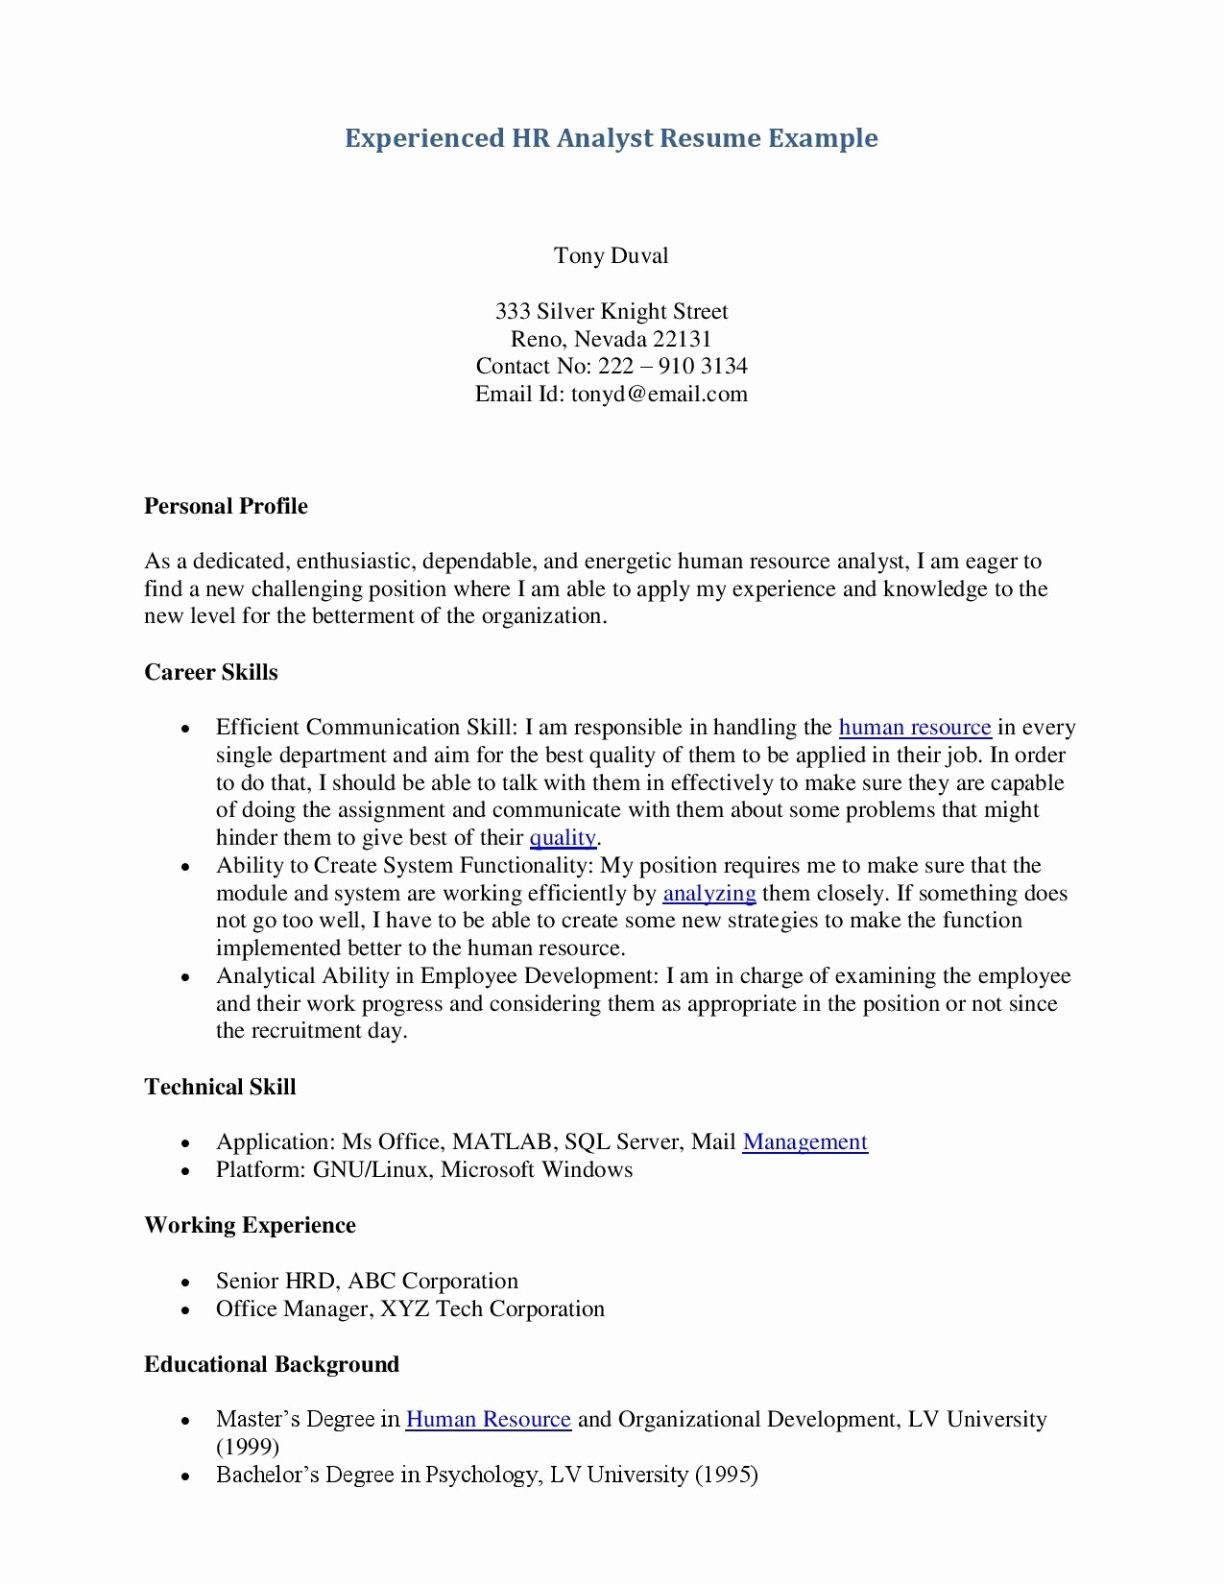 Email Letter Template - Cover Letter Template Google Docs Unique Resume Cover Letter